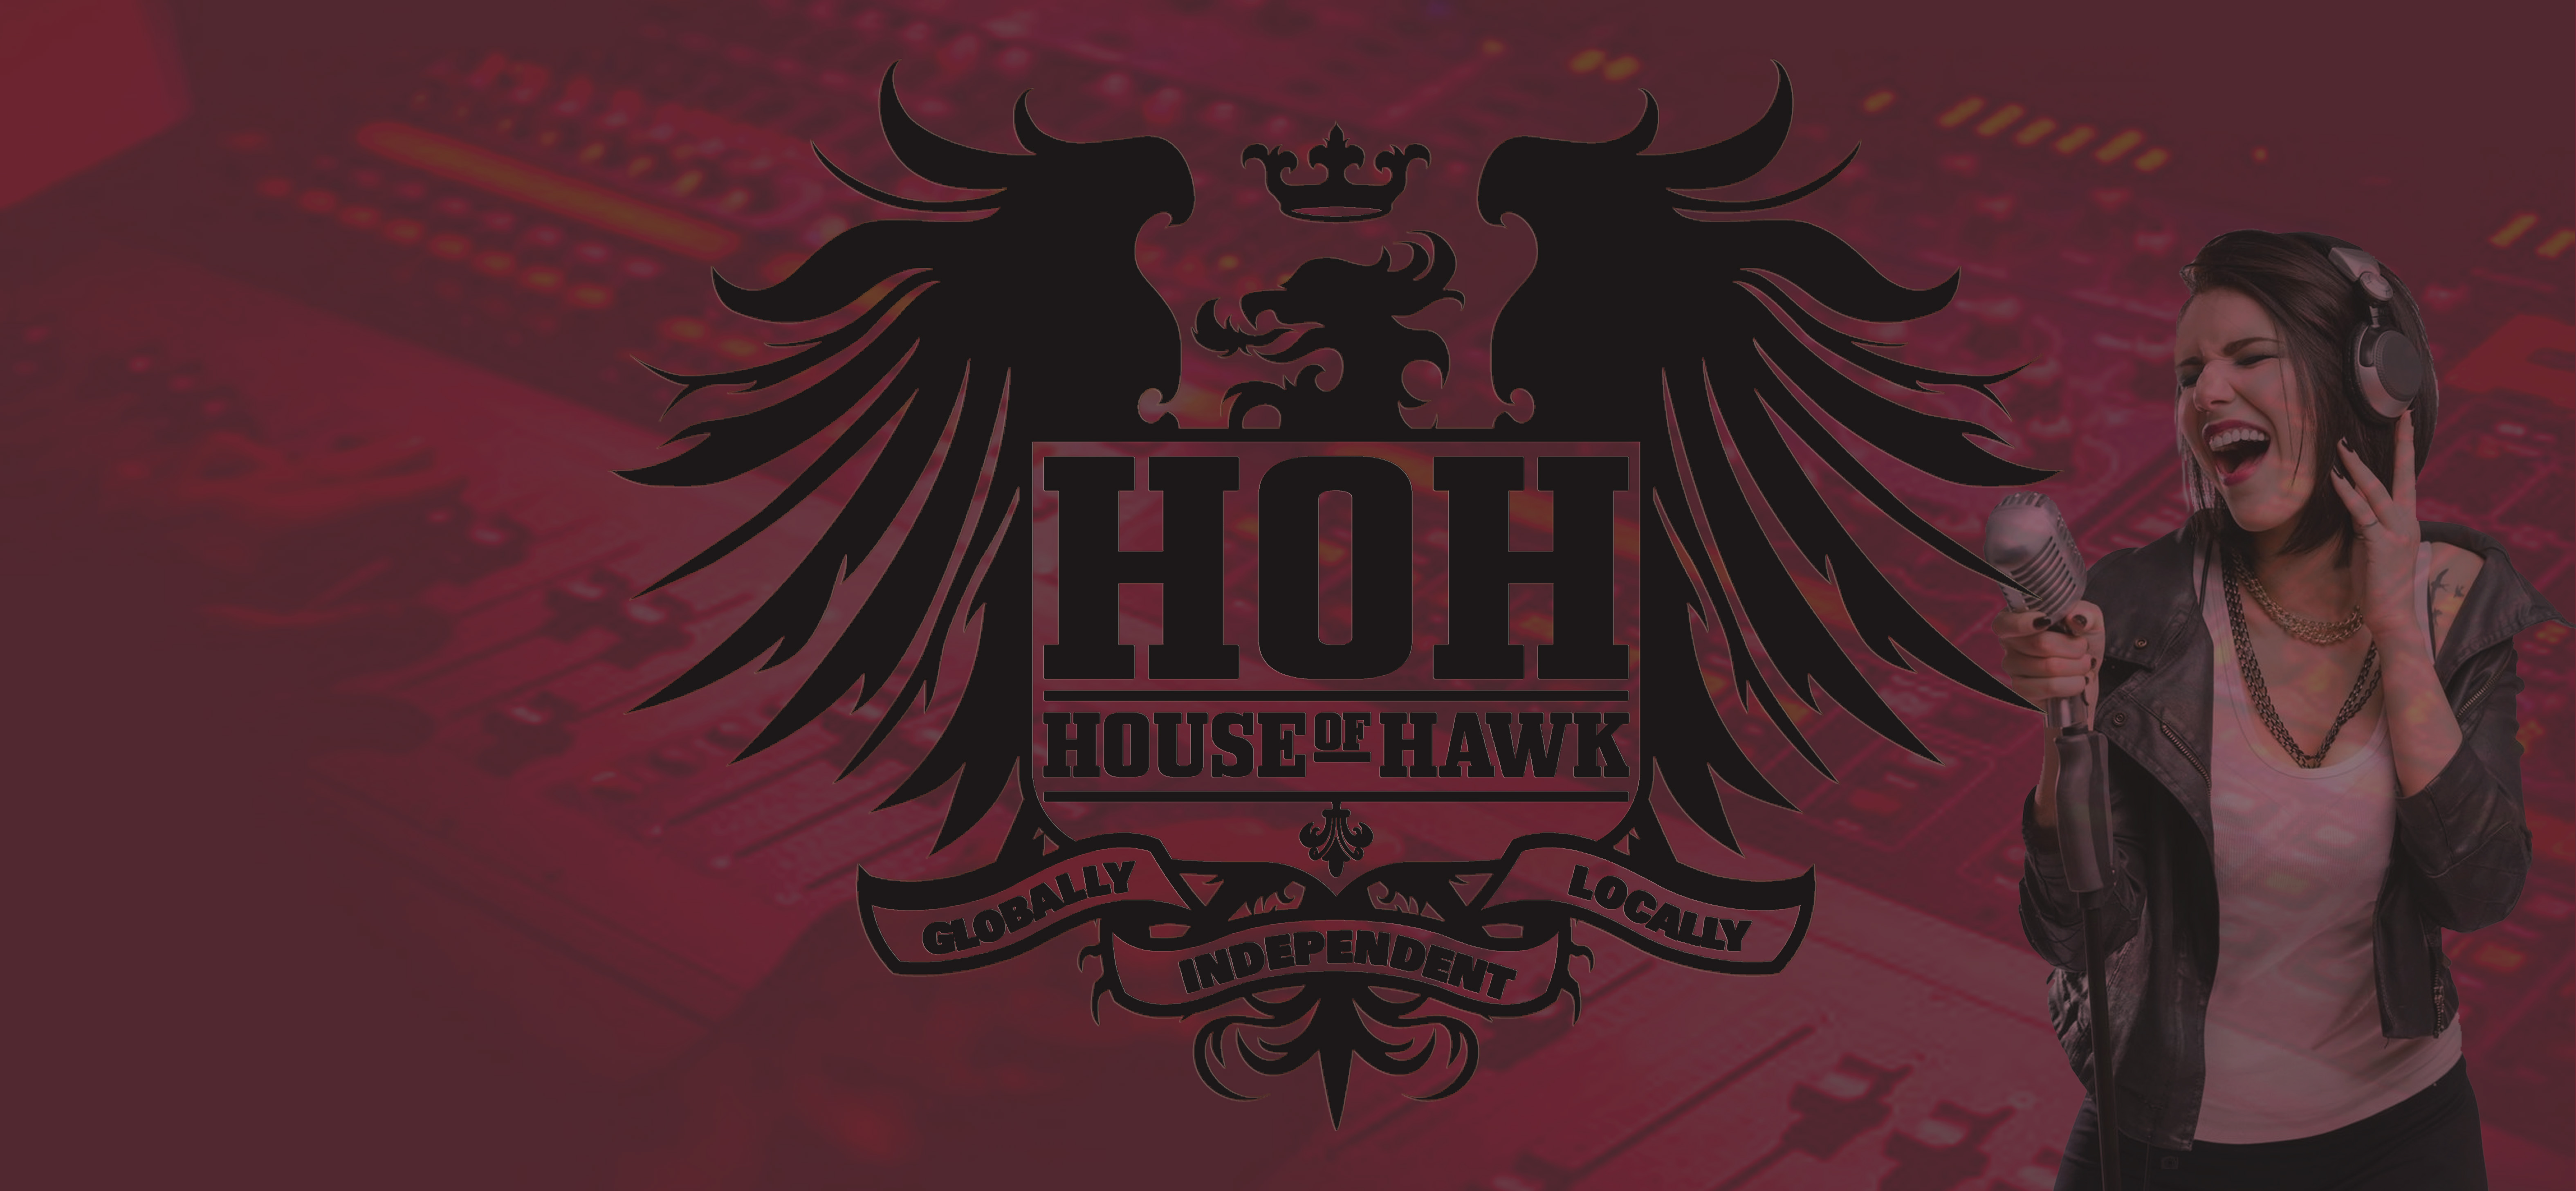 House of Hawke Musician Promotion